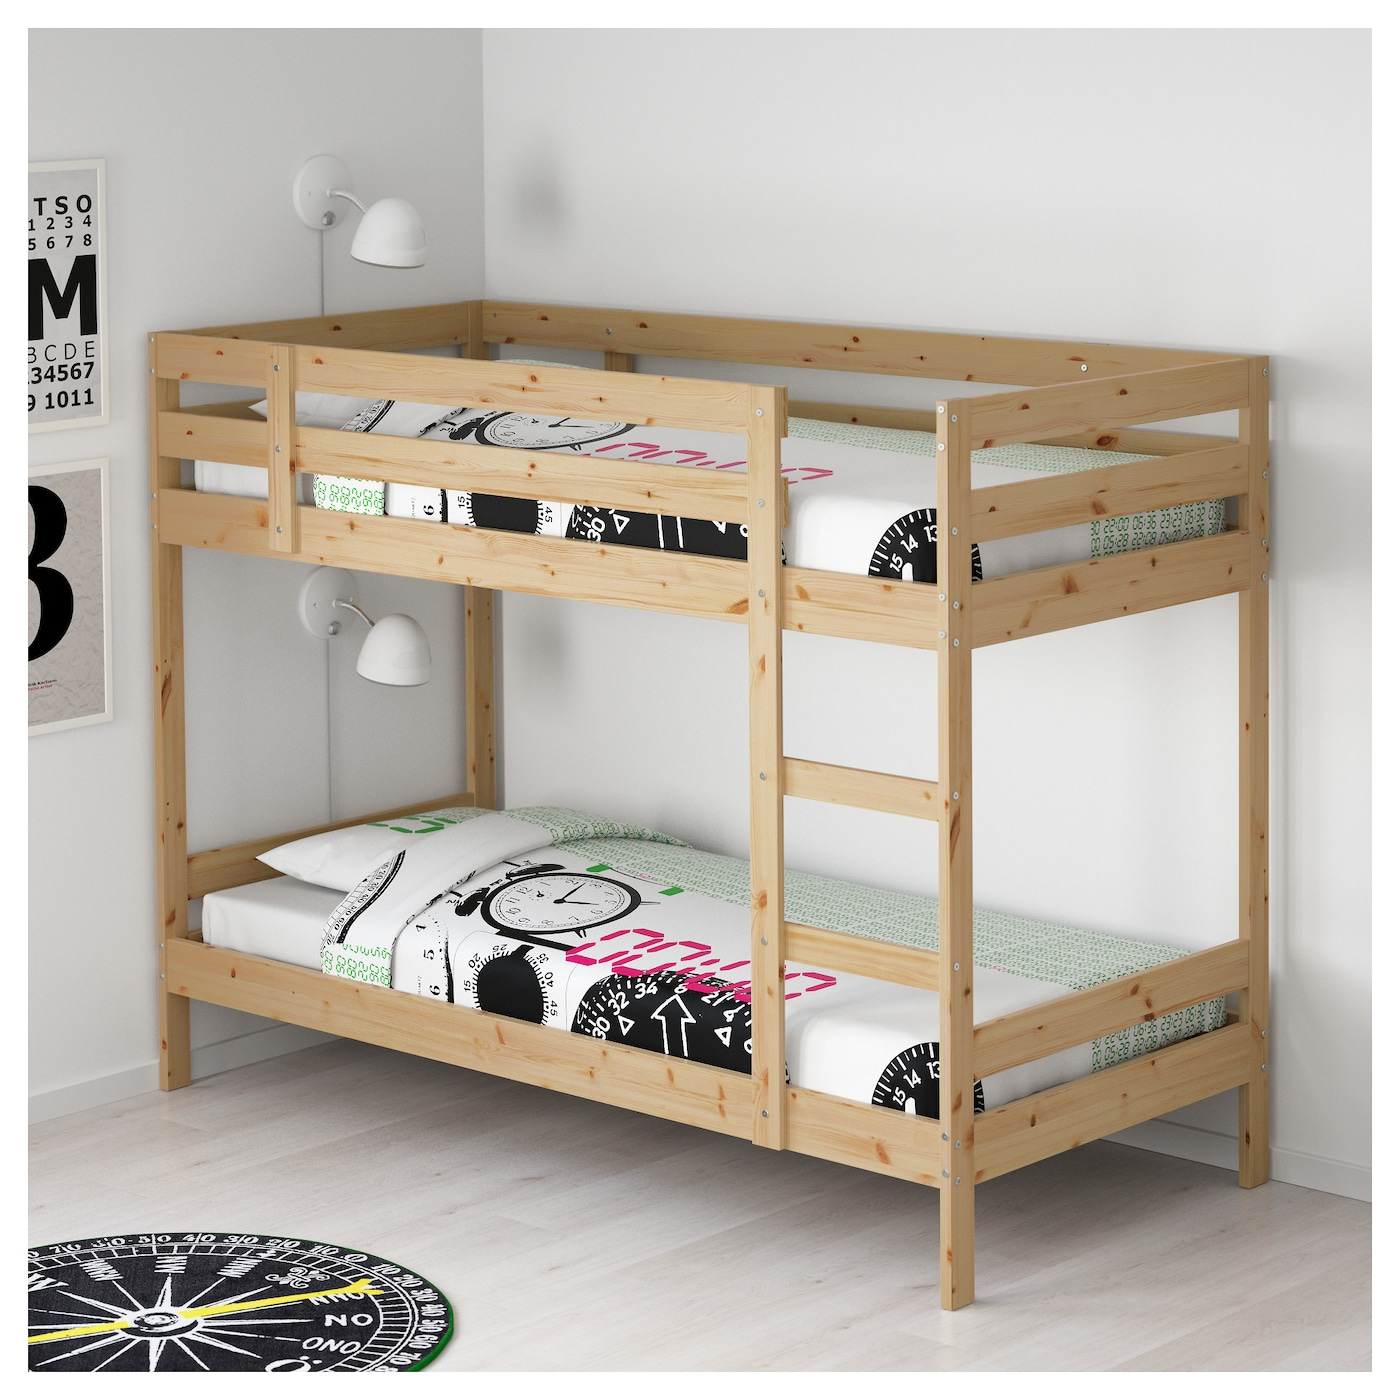 mydal bunk bed frame pine 90x200 cm ikea. Black Bedroom Furniture Sets. Home Design Ideas